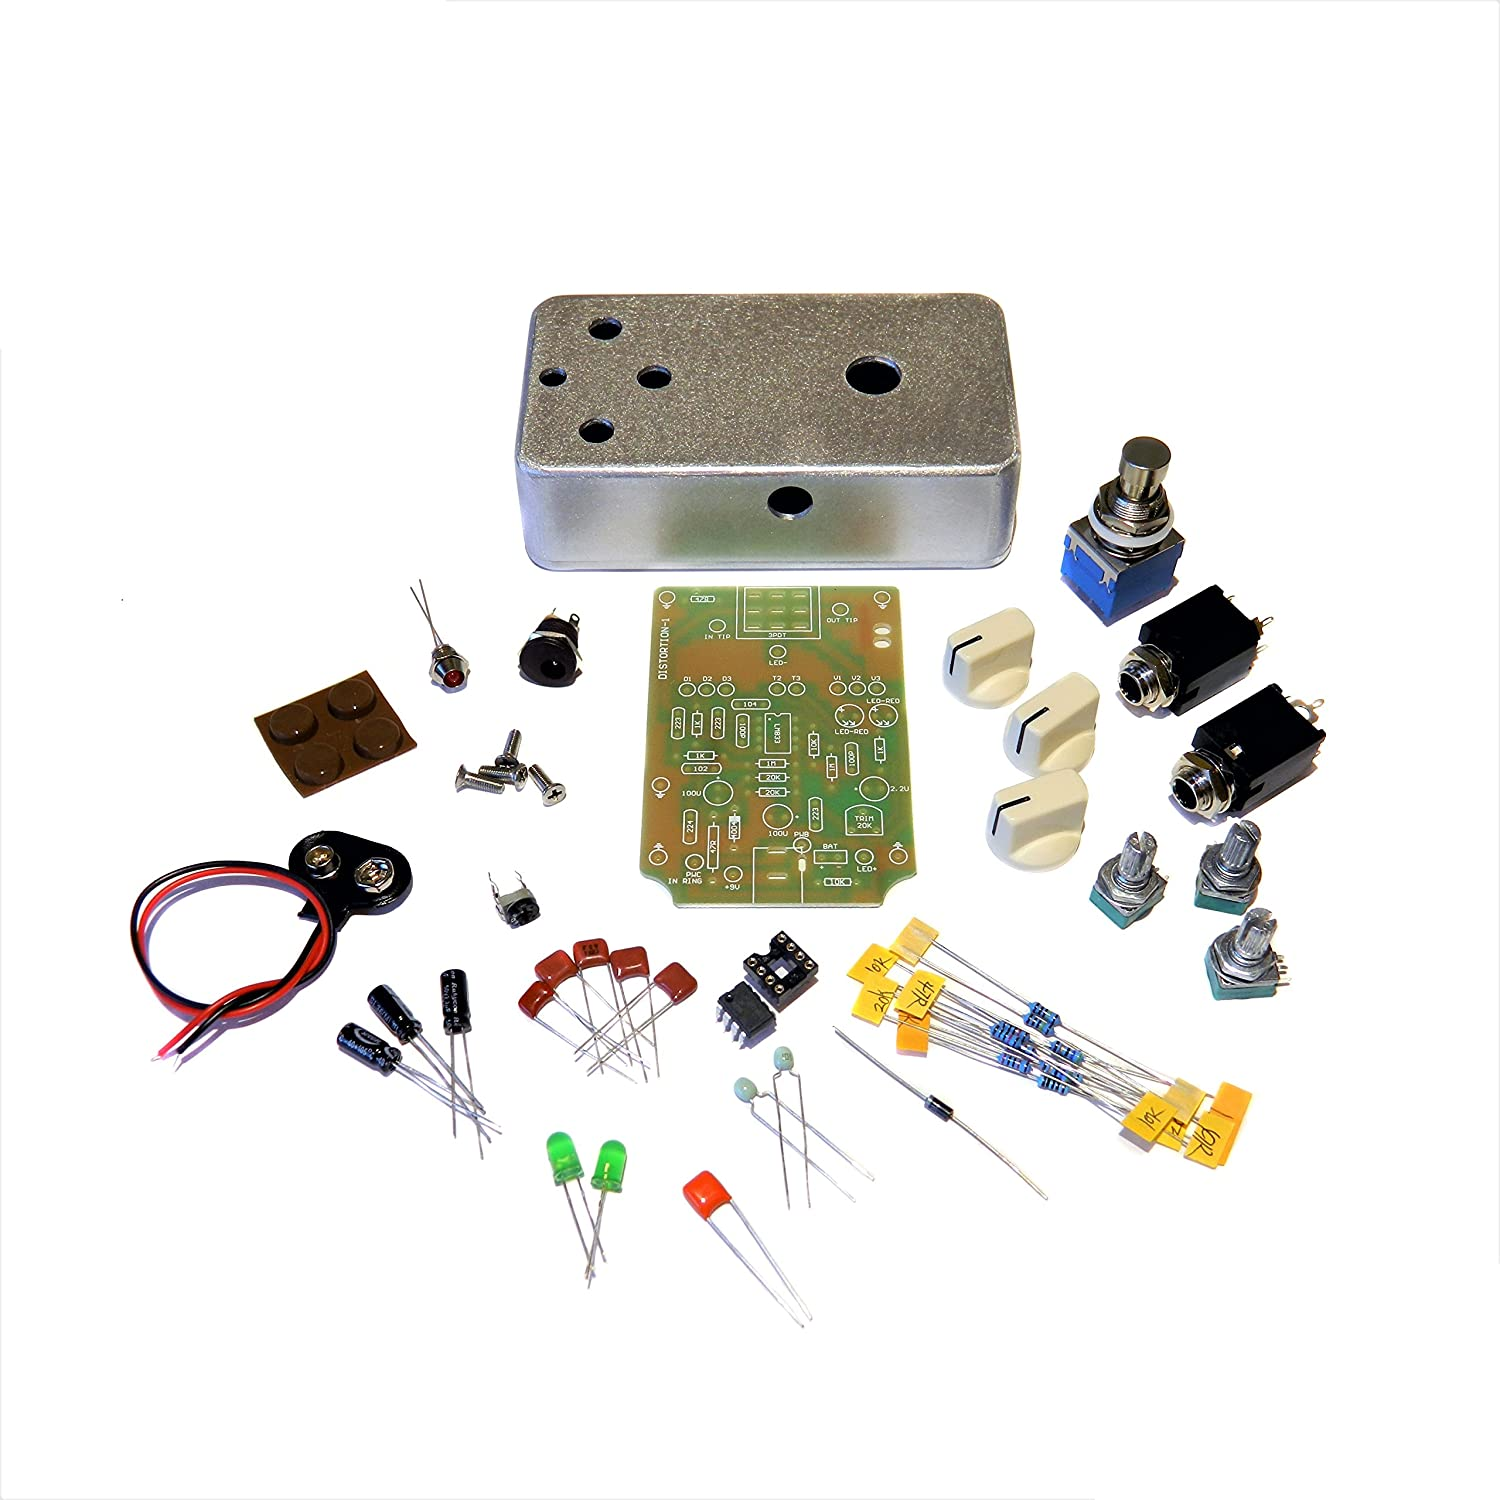 Amazon.com: R-Stomp DIY Distortion-1 Guitar Pedal Kit: Musical Instruments